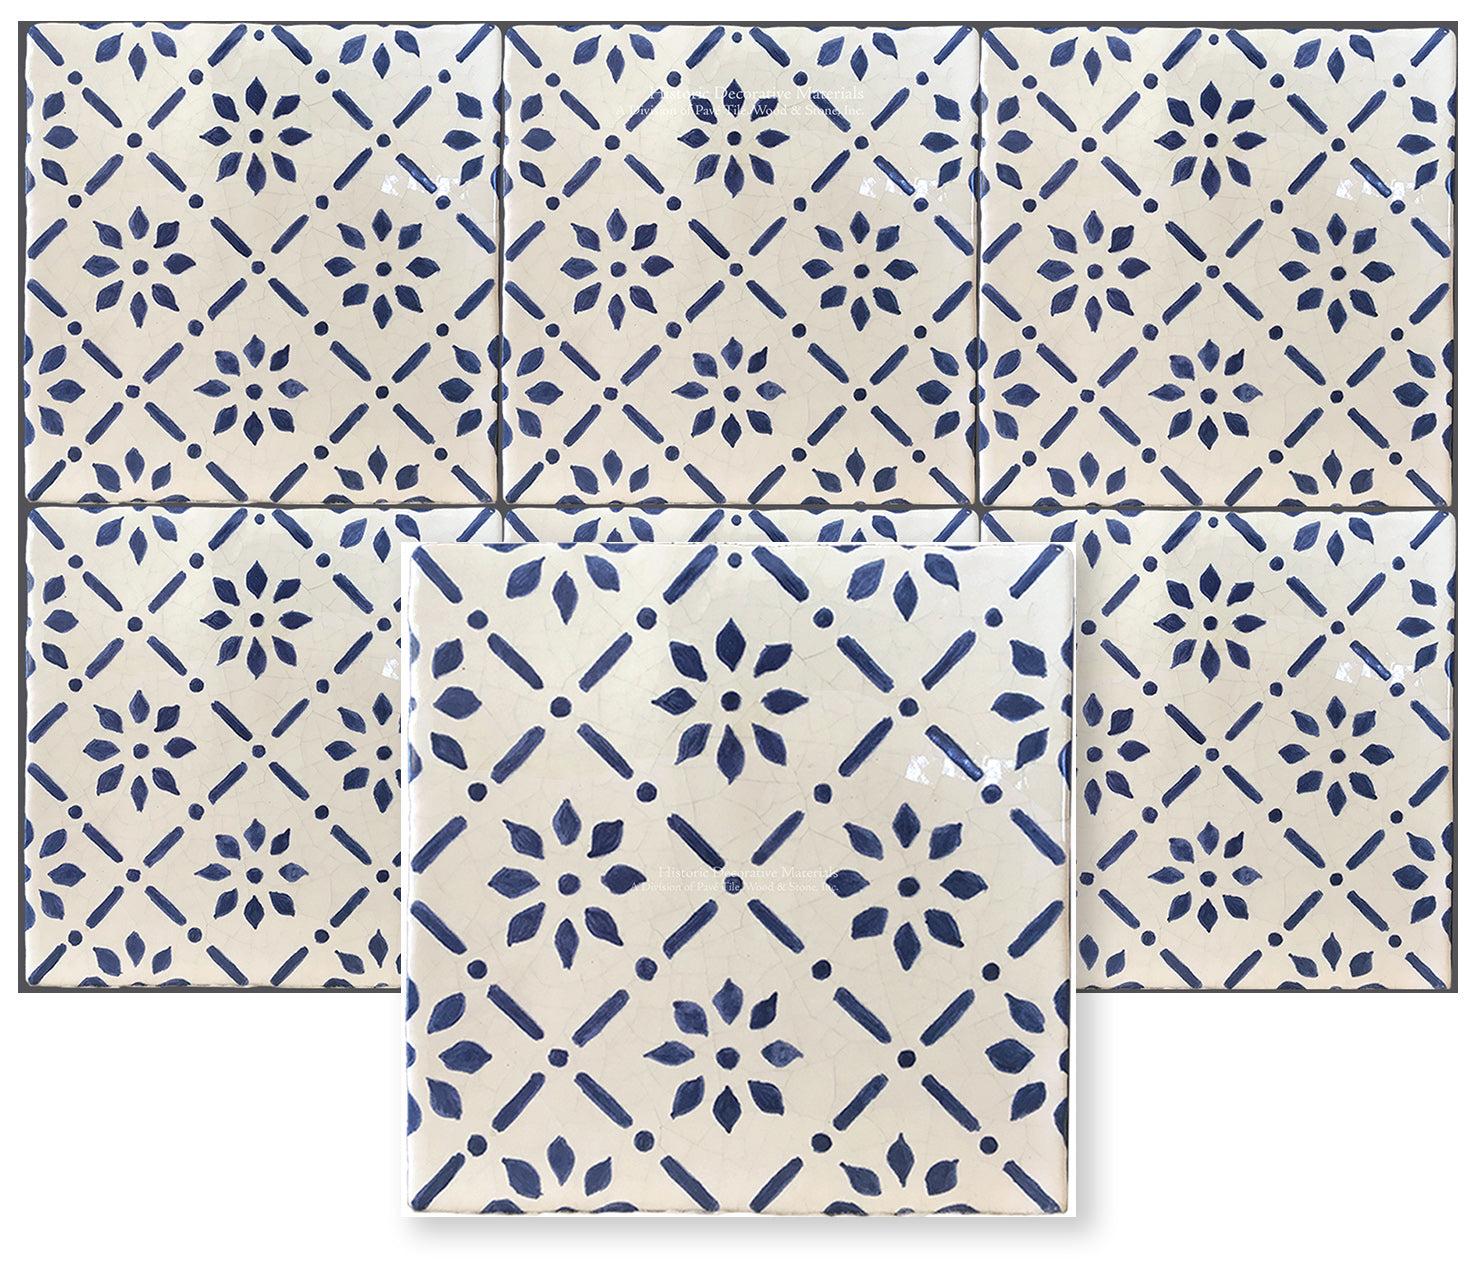 Blue and White Hand painted decorative wall tile like the Monet tiles found in Giverny, France are for kitchen backsplash, fireplace surround and bathroom walls that interior designers choose for traditional and historic interior design styles